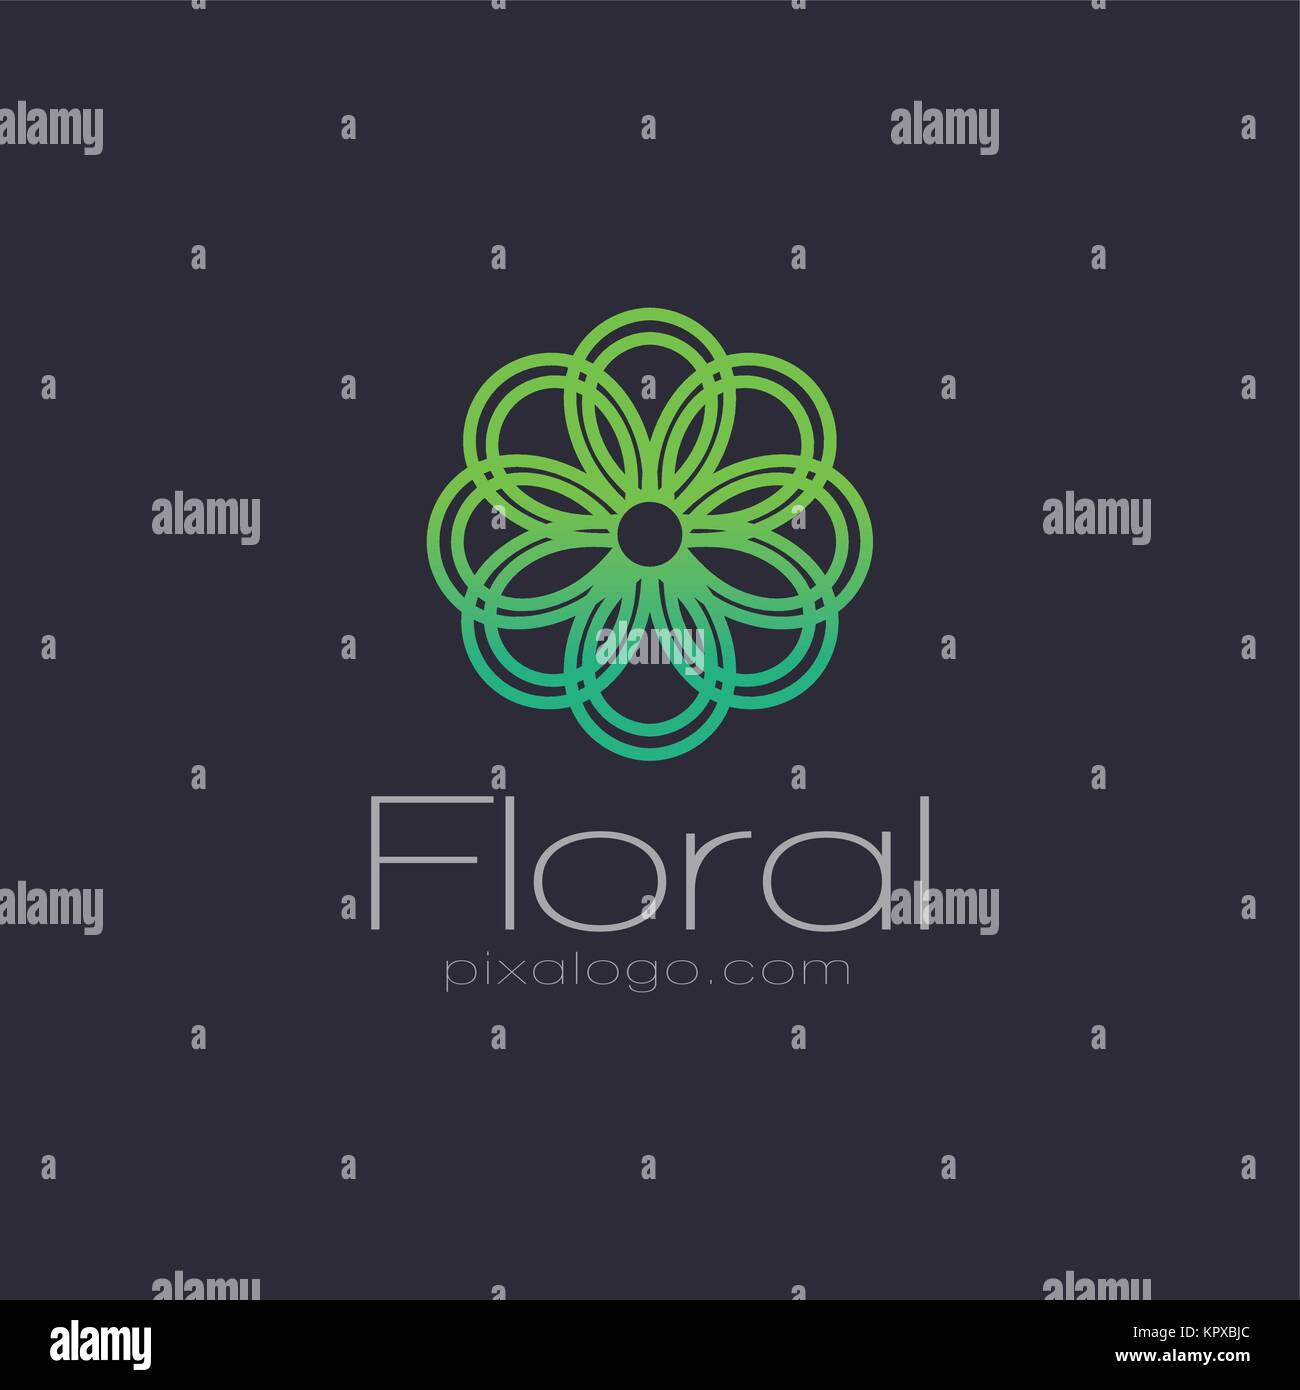 Logo design template of all industries. Check My Portfolio to find all of them. - Stock Vector